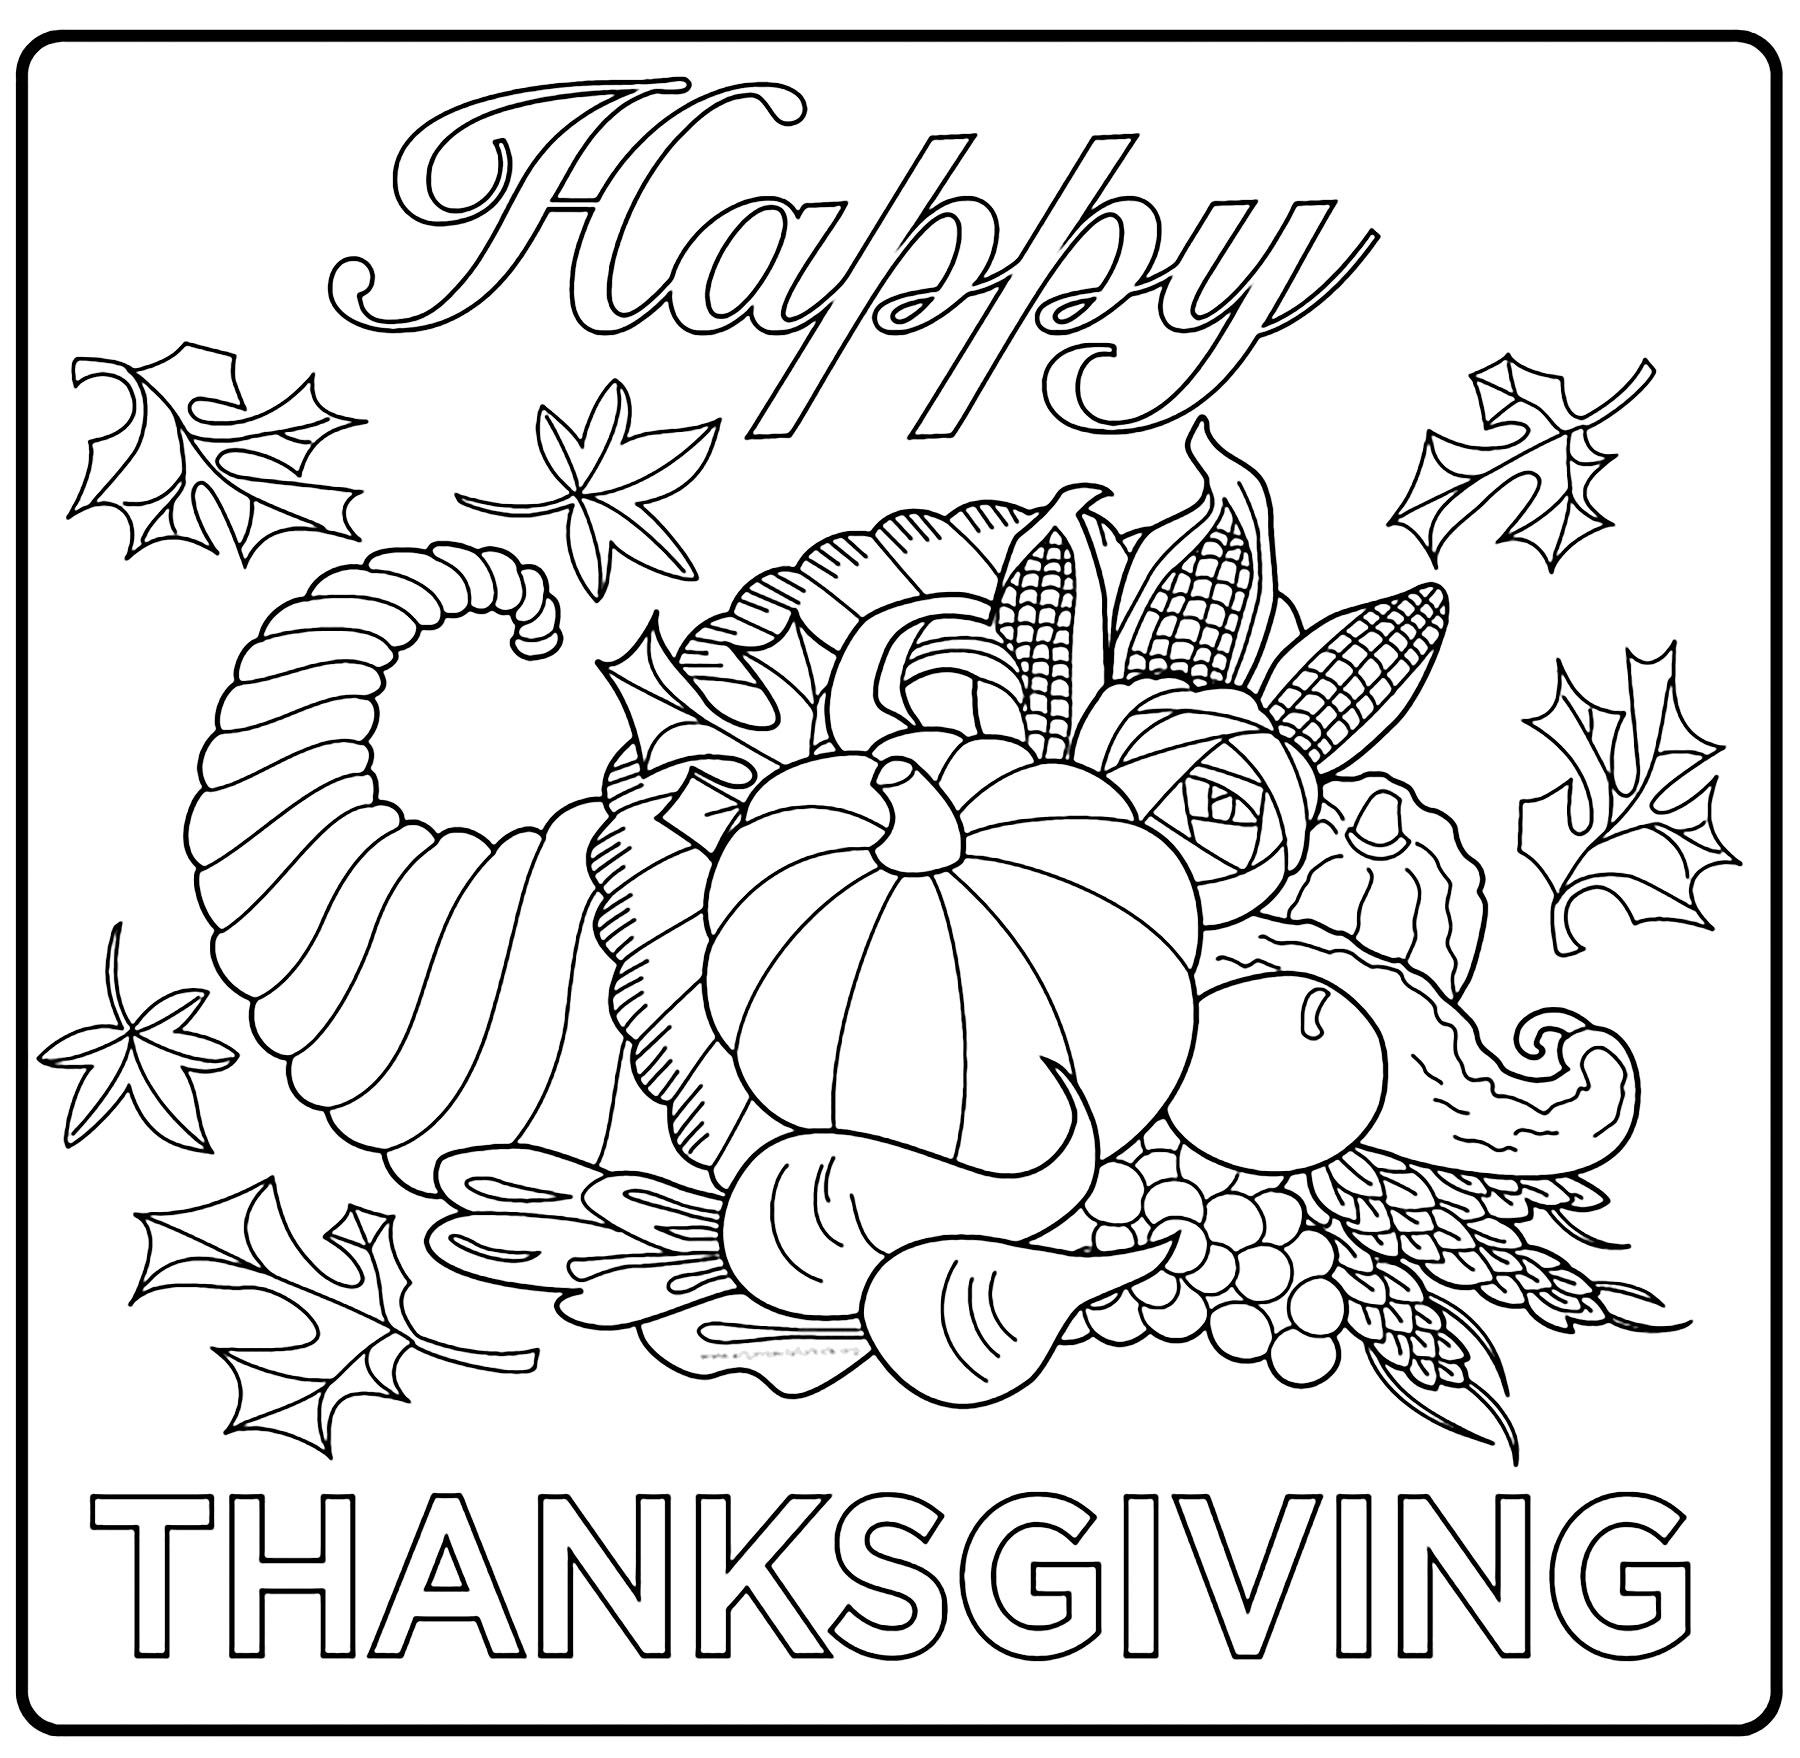 Thanksgiving free to color for children - Simple ...